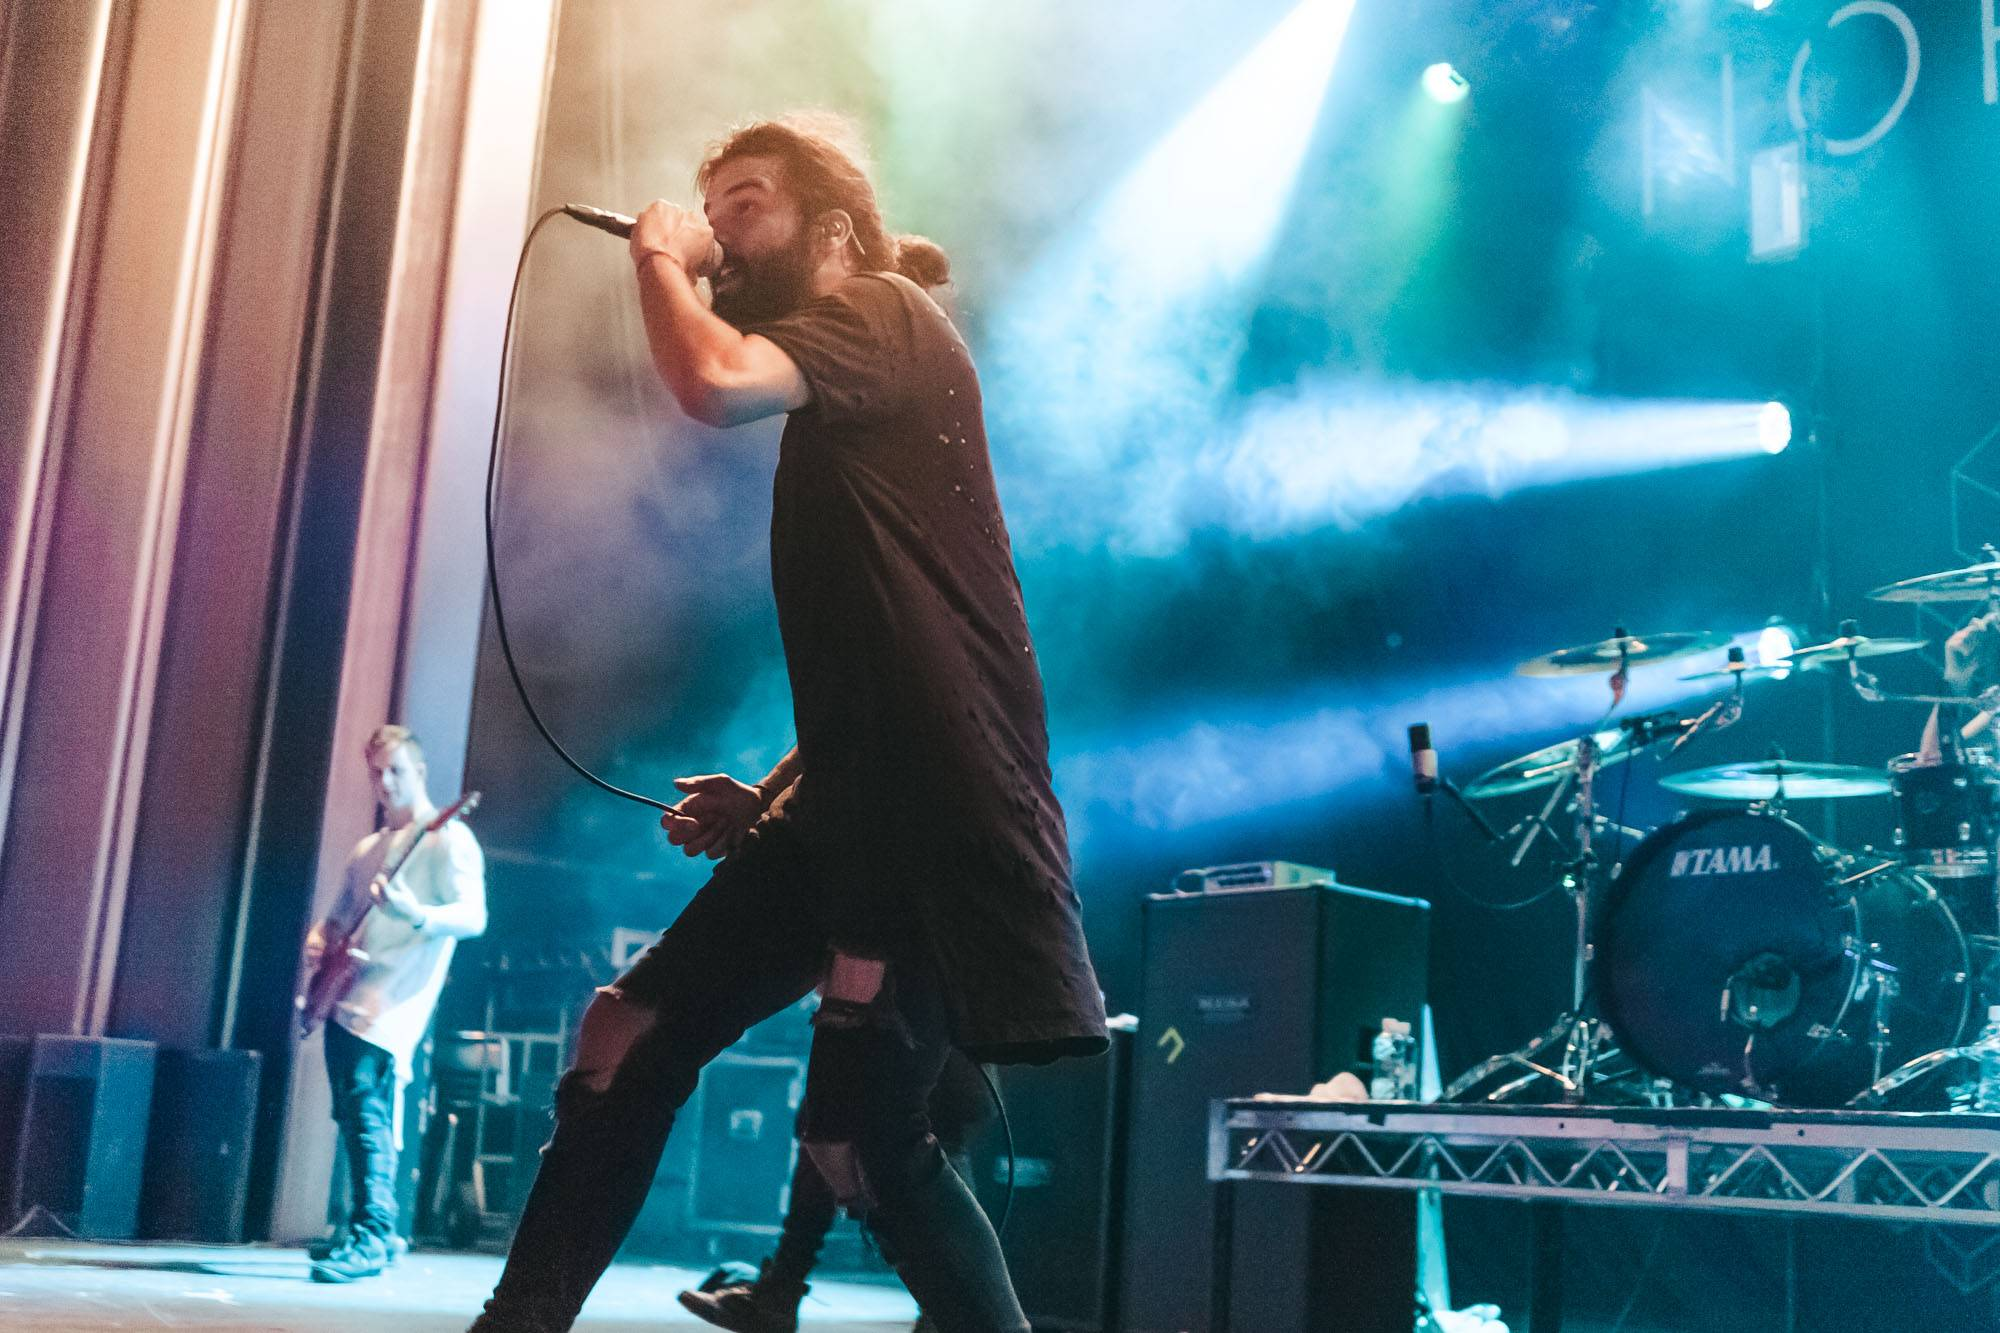 Northlane at the Vogue Theatre, Vancouver, July 29 2017. Kelli Anne photo.